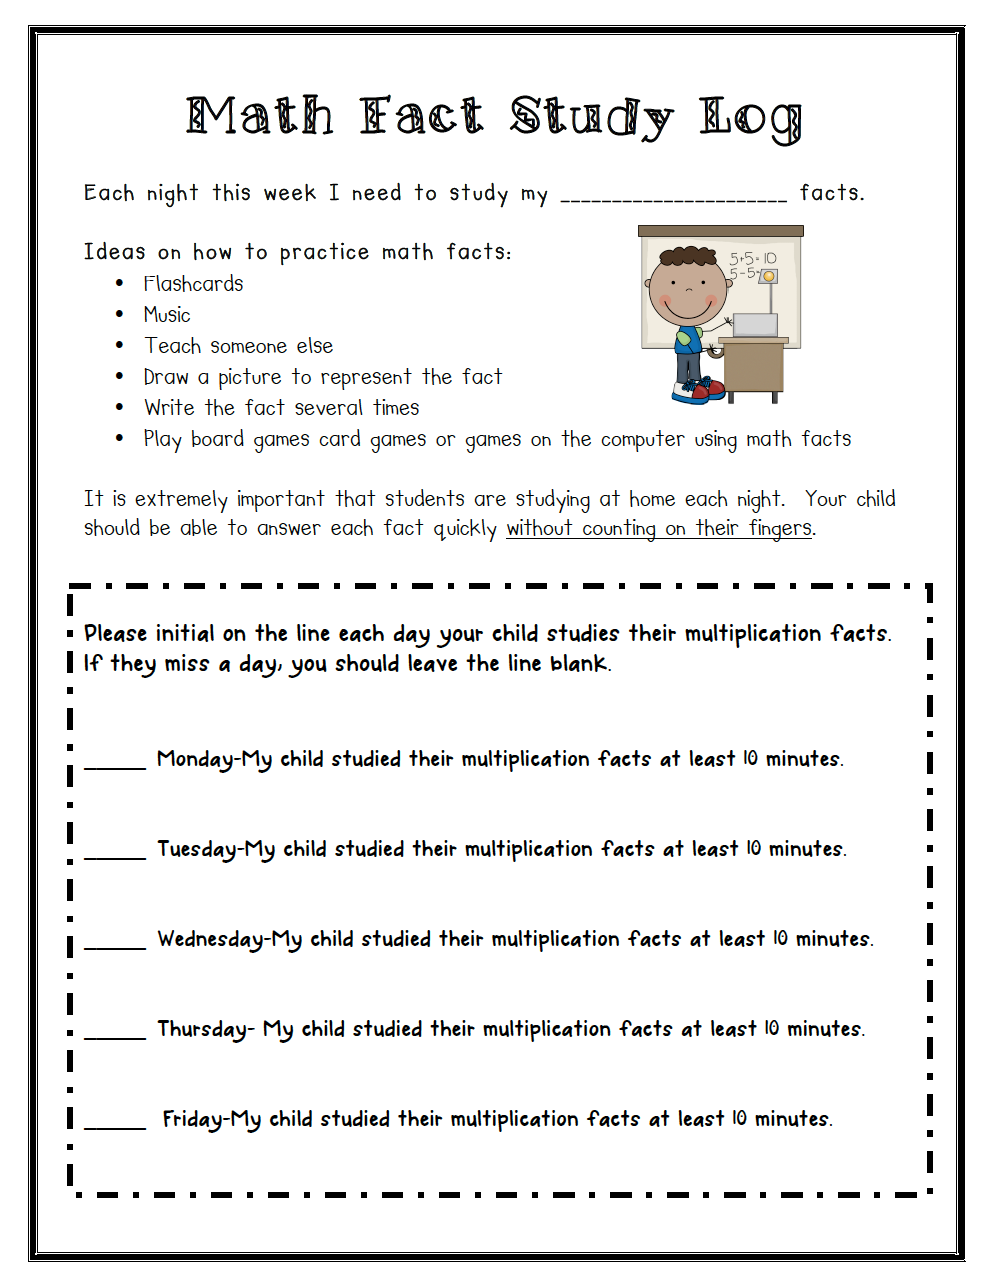 Multiplication Facts for Upper Elementary Students | Math facts ...